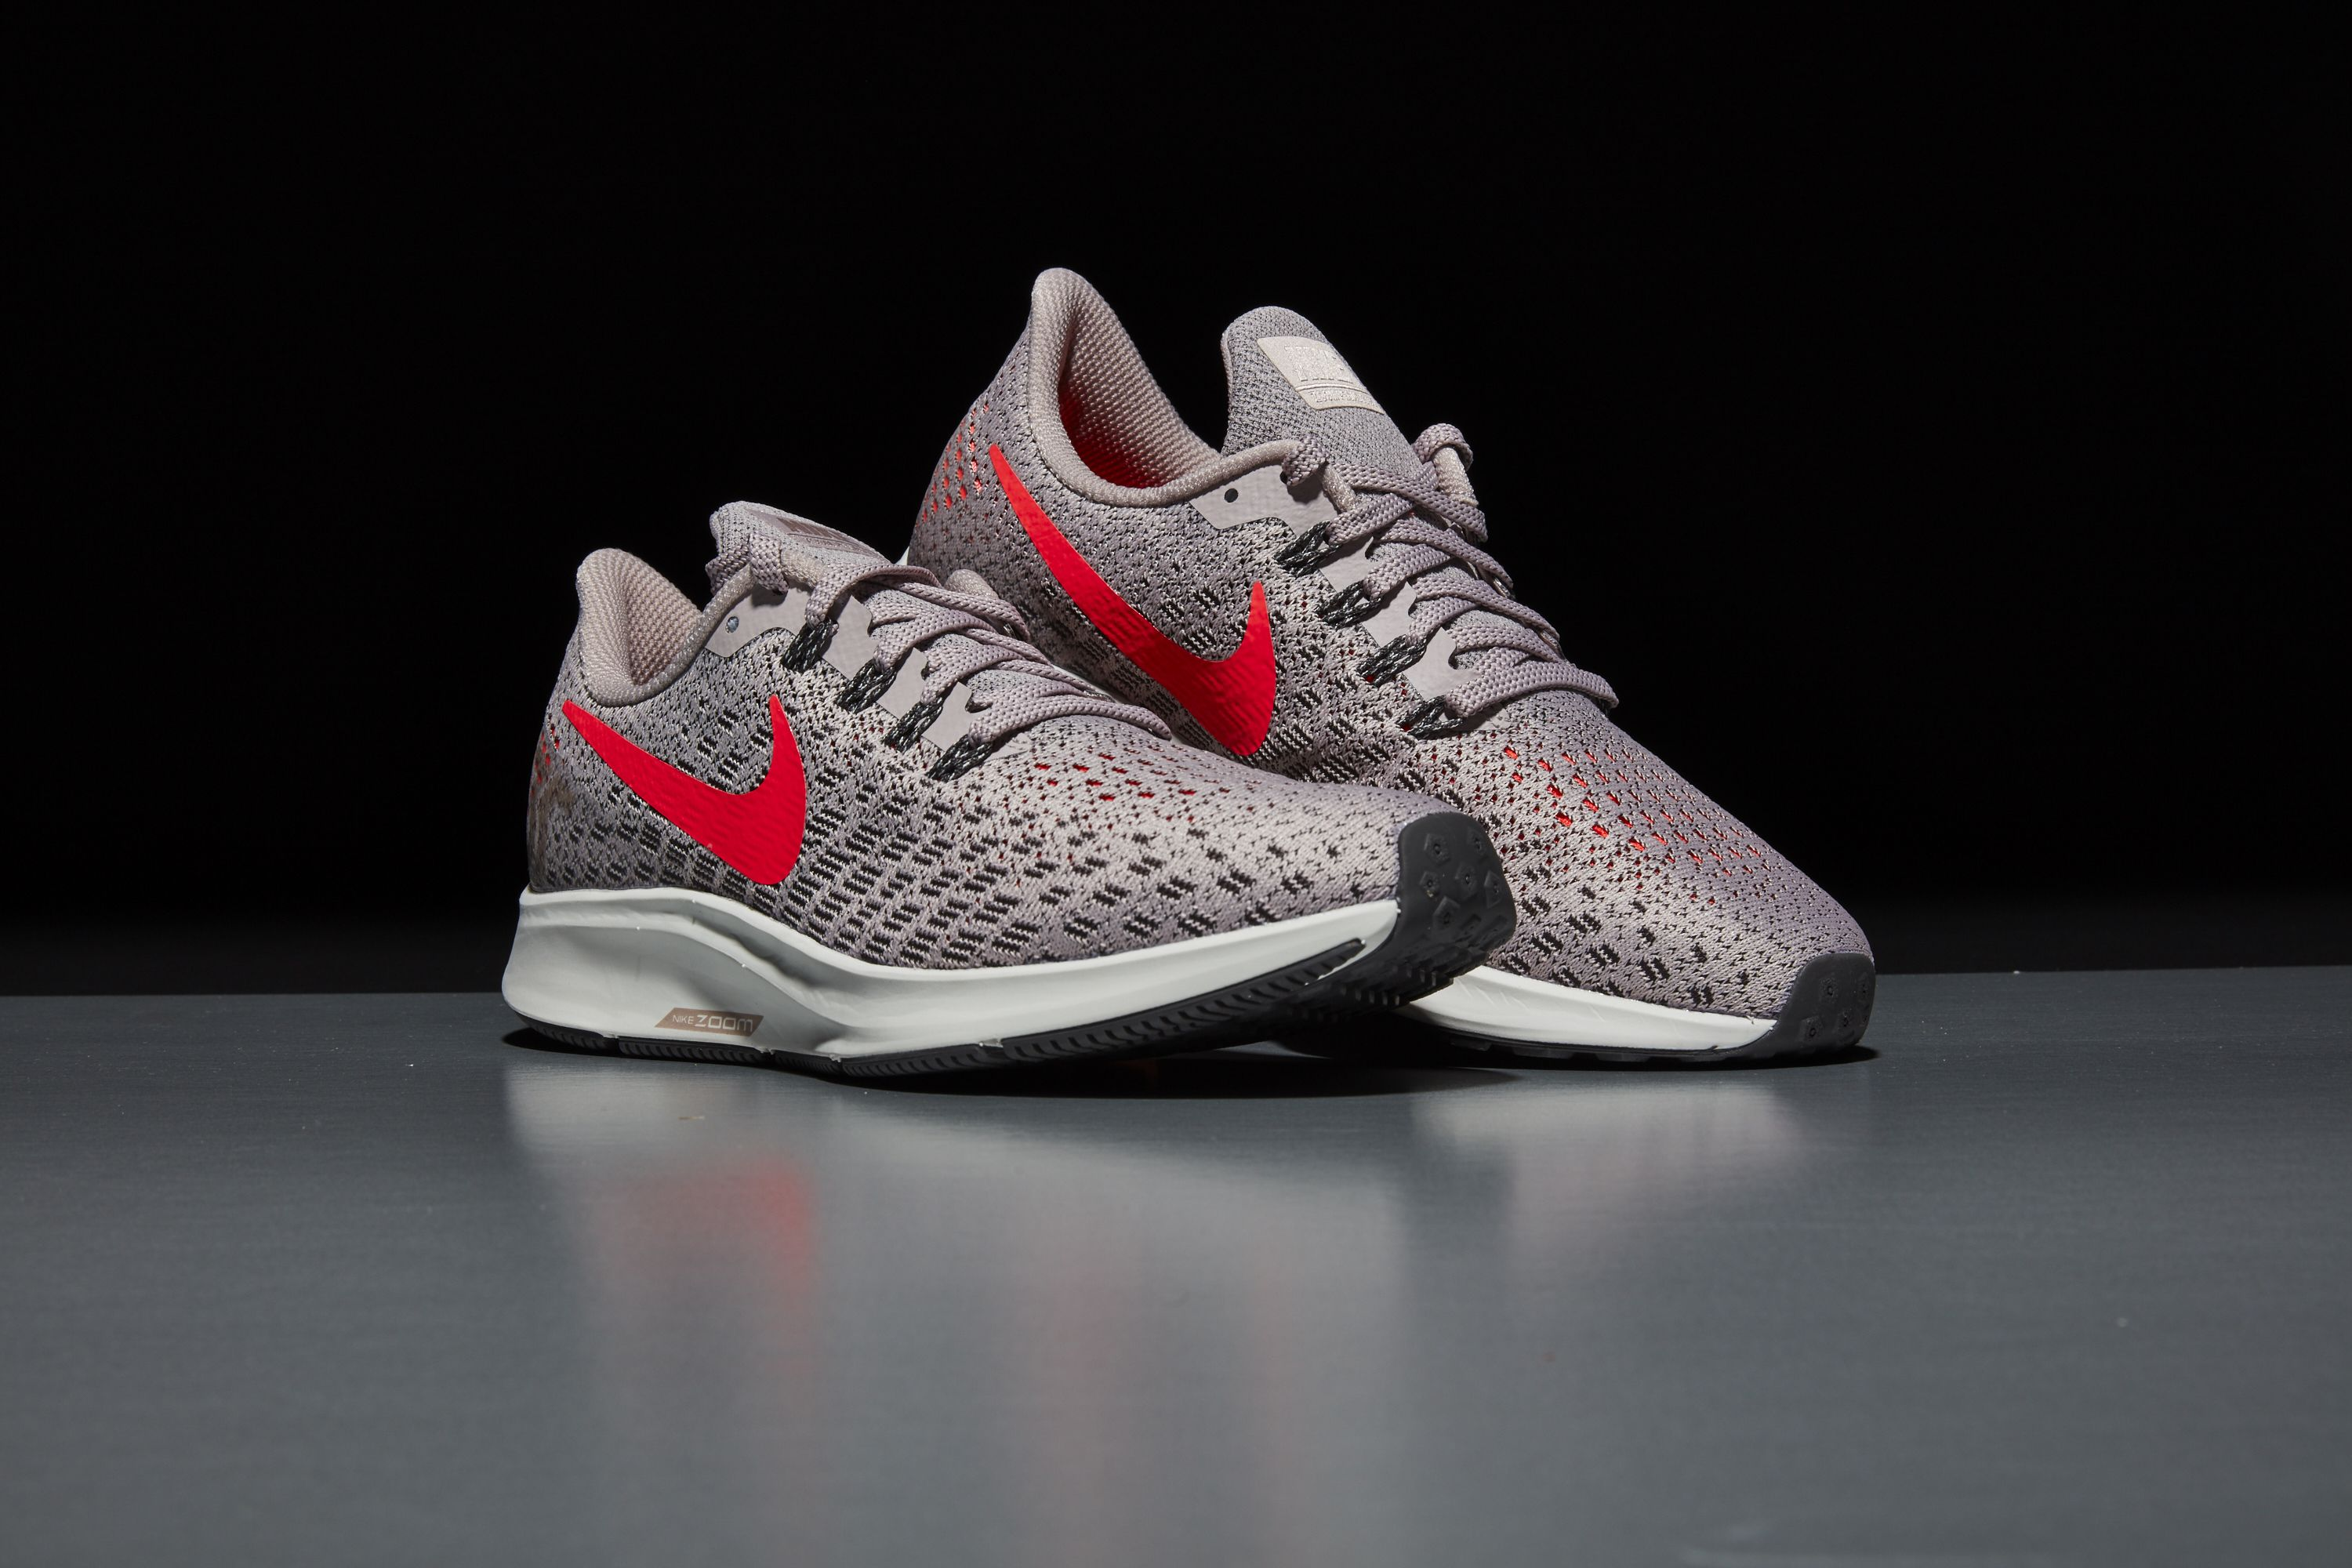 100% authentic 14bba 3be51 The Nike Air Zoom Pegasus 35 Is 36% off Right Now